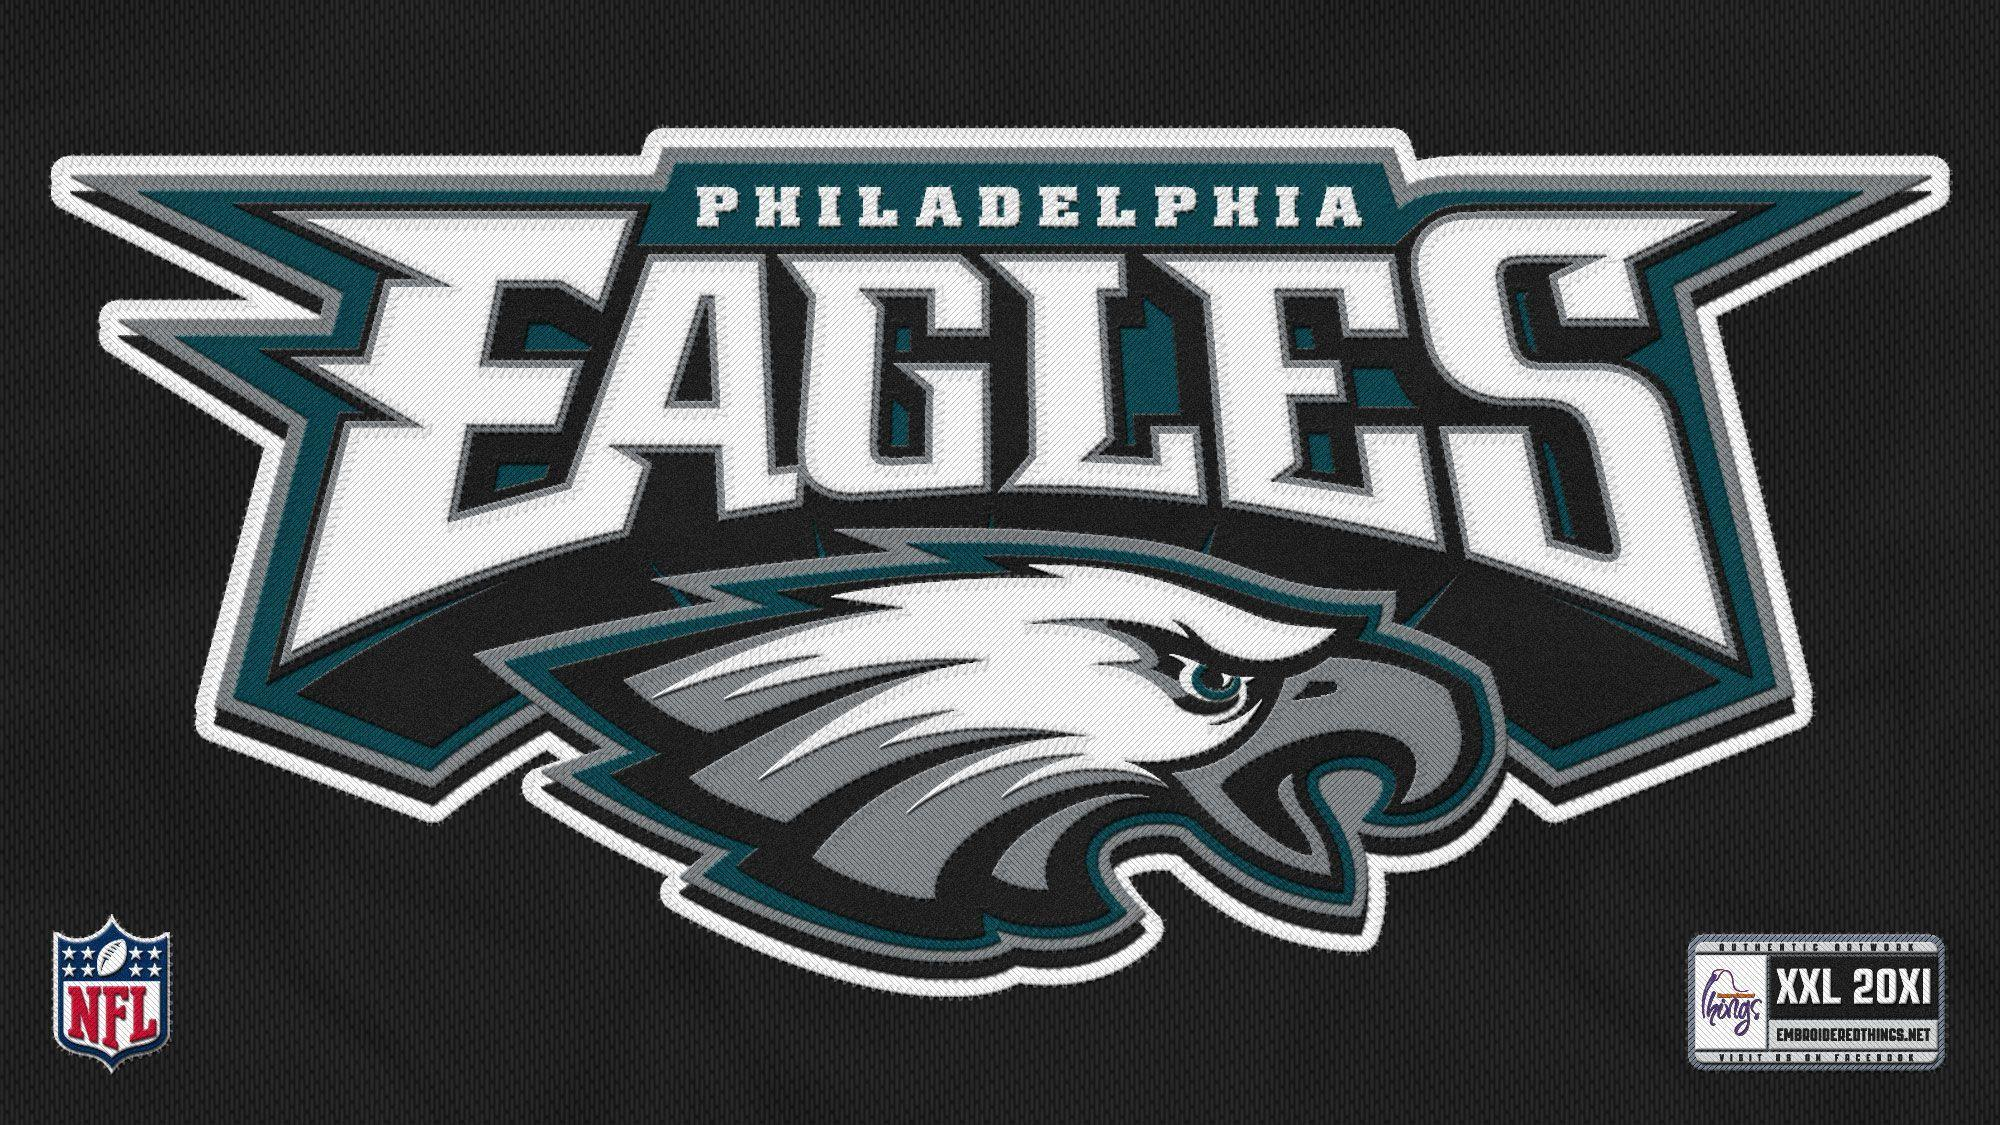 Philadelphia Eagles Nfl Football Wallpapers HD 1080p #96893 - The ...